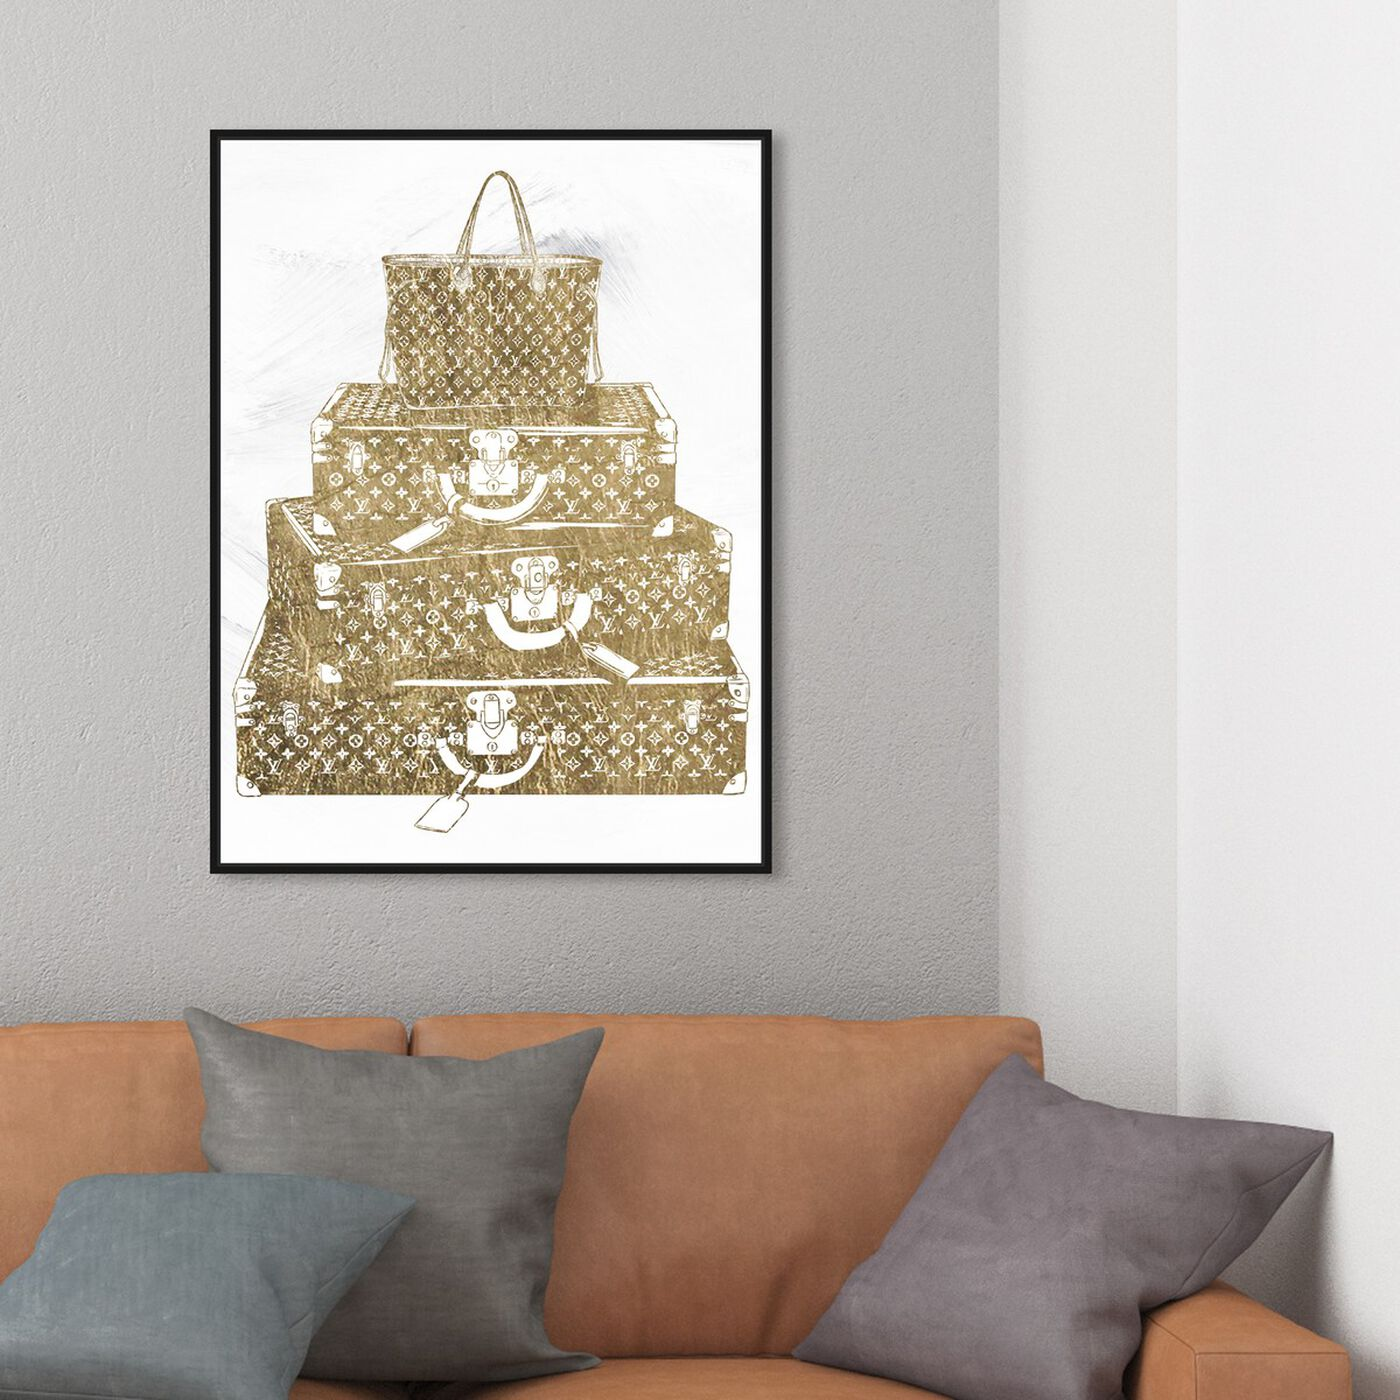 Hanging view of Traveling the Globe featuring fashion and glam and travel essentials art.